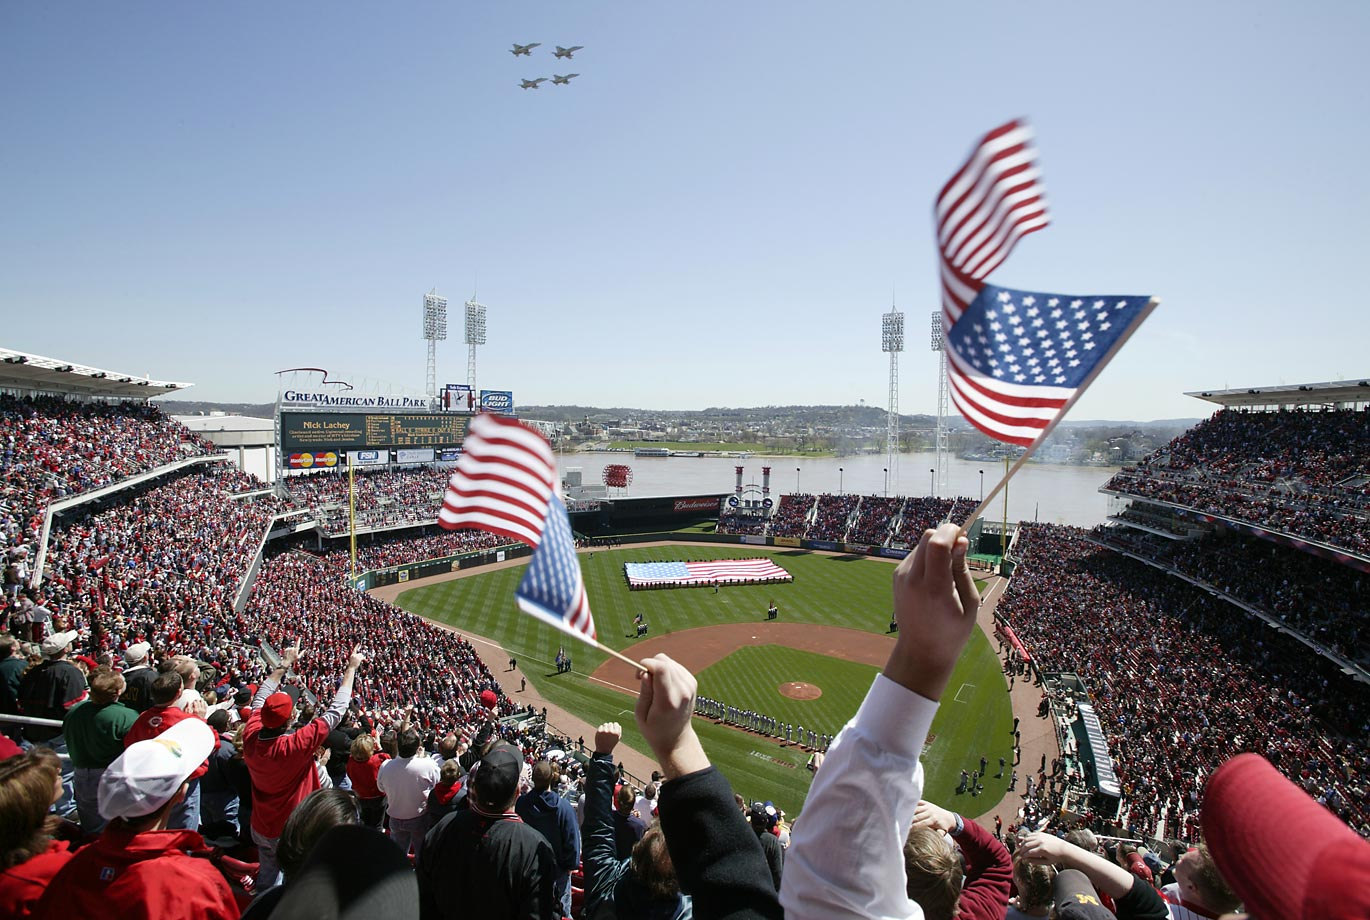 An Opening Day flyover at Cincinnati's Great American Ballpark on April 5, 2004, before the Reds took on the Cubs.